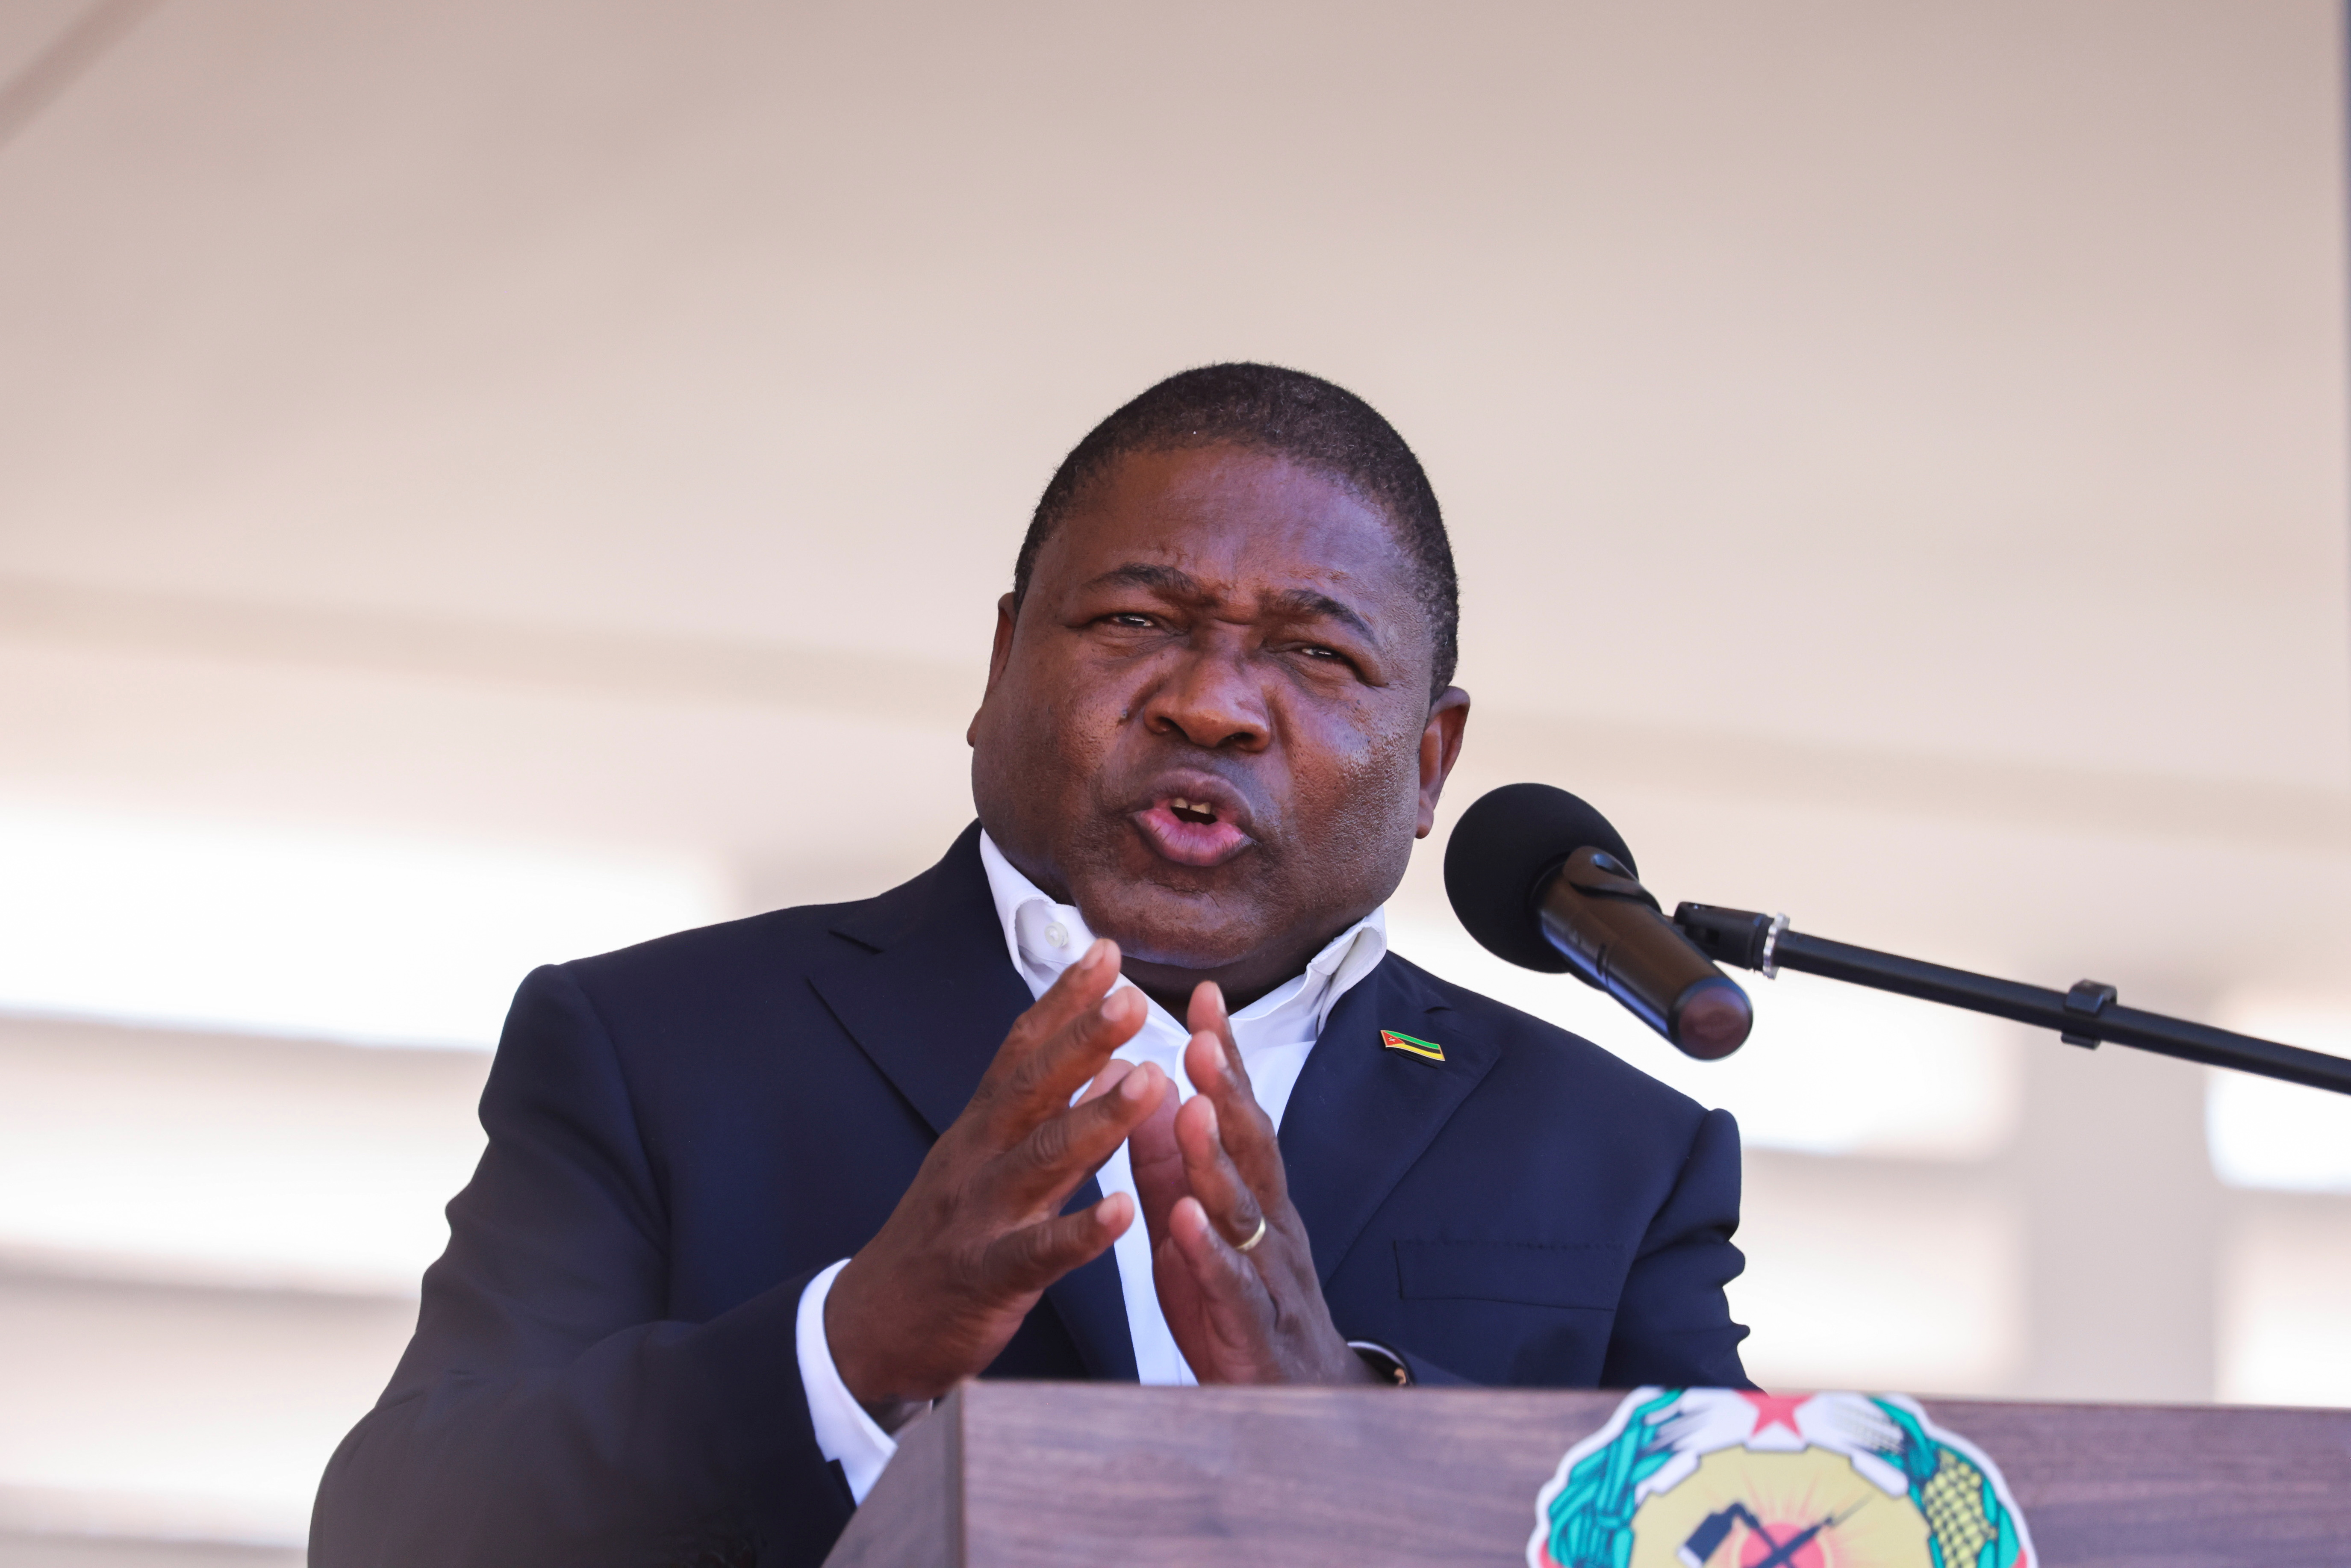 Mozambique's President Filipe Nyusi speaks during Armed Forces Day celebrations in Pemba, Mozambique. September 25, 2021.REUTERS/Baz Ratner